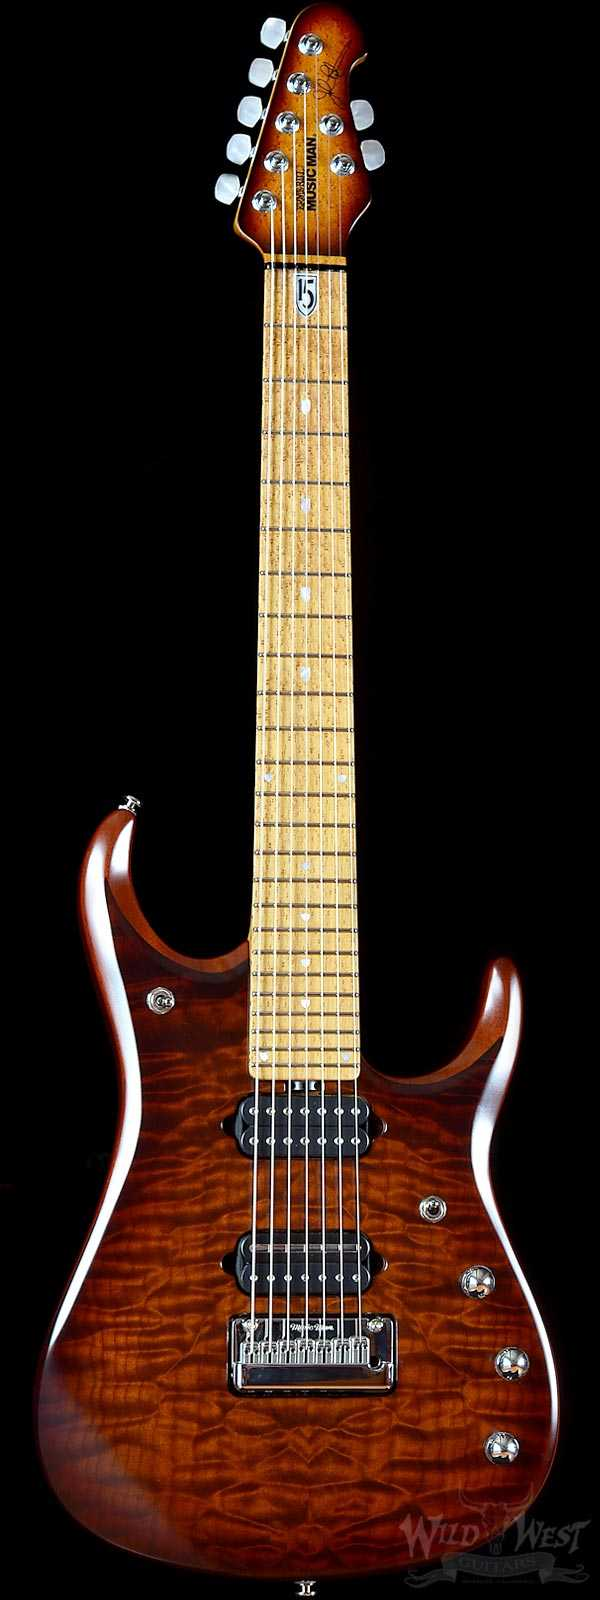 Ernie Ball Music Man JP15 7 Sahara Burst Quilt Maple Top